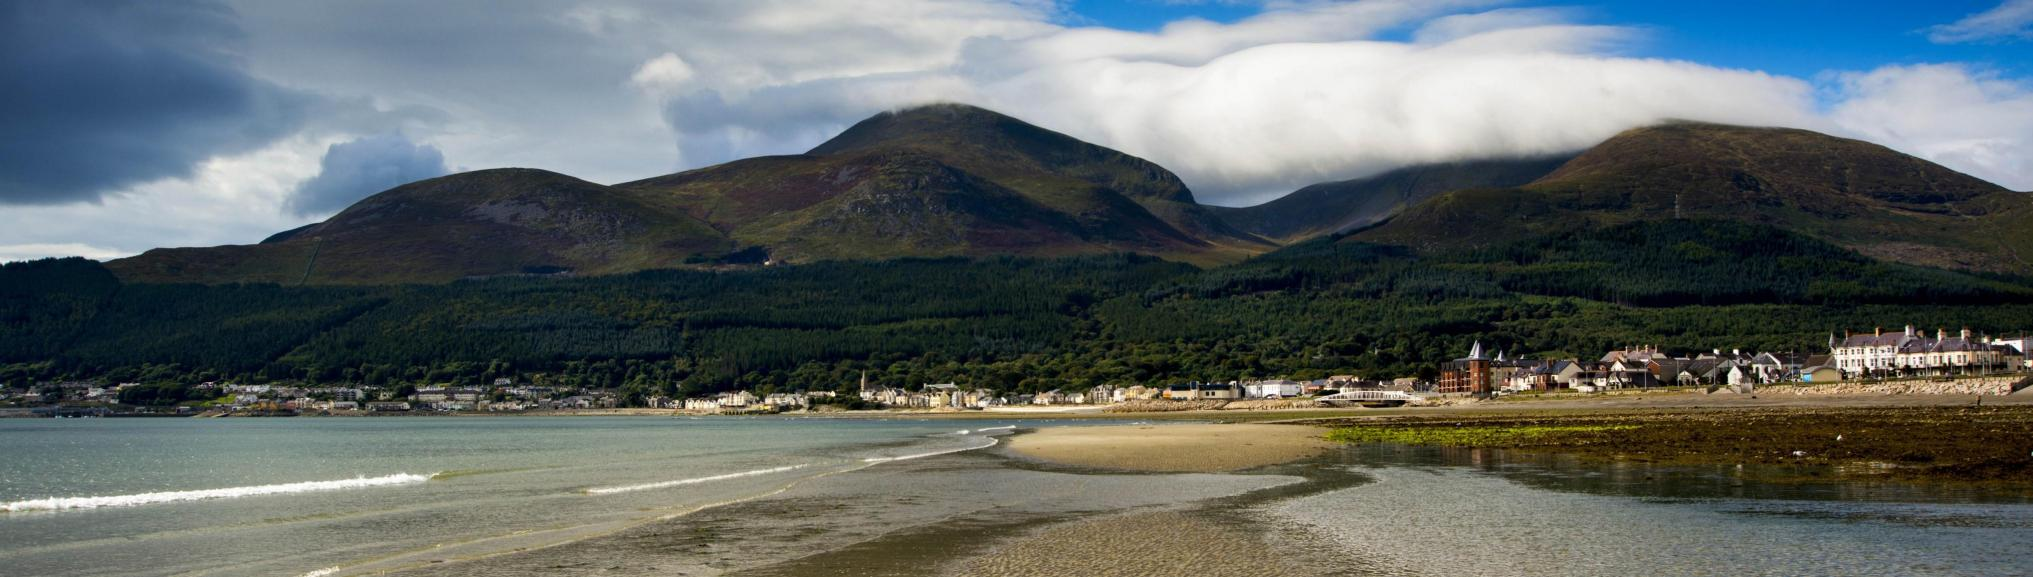 The Mourne Mountains, Co. Down